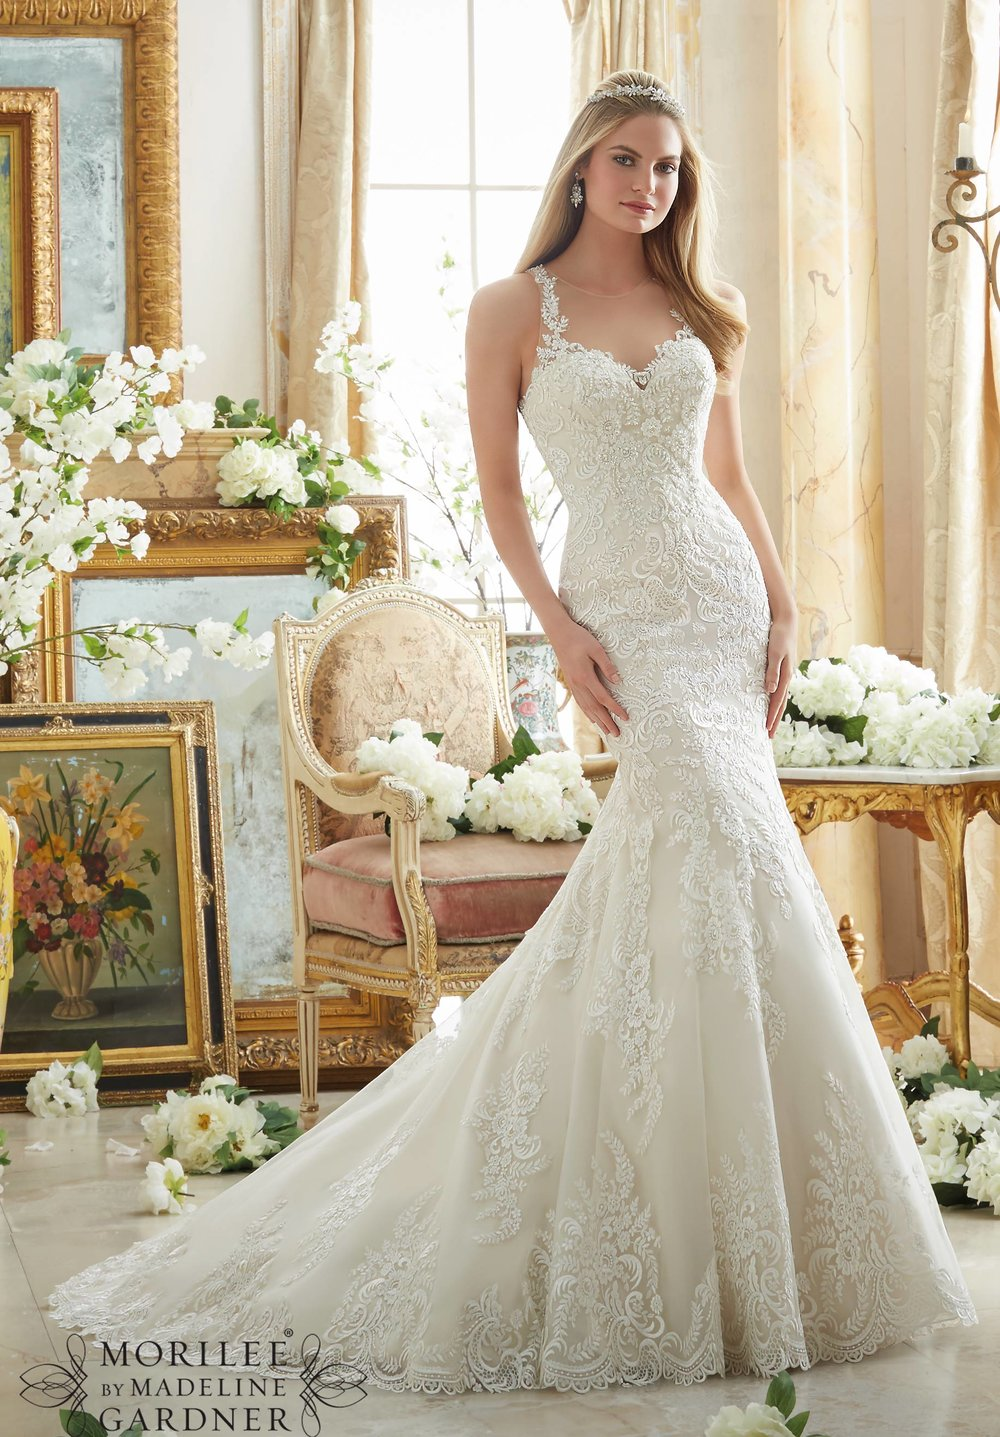 Mori Lee Bridal wedding dress